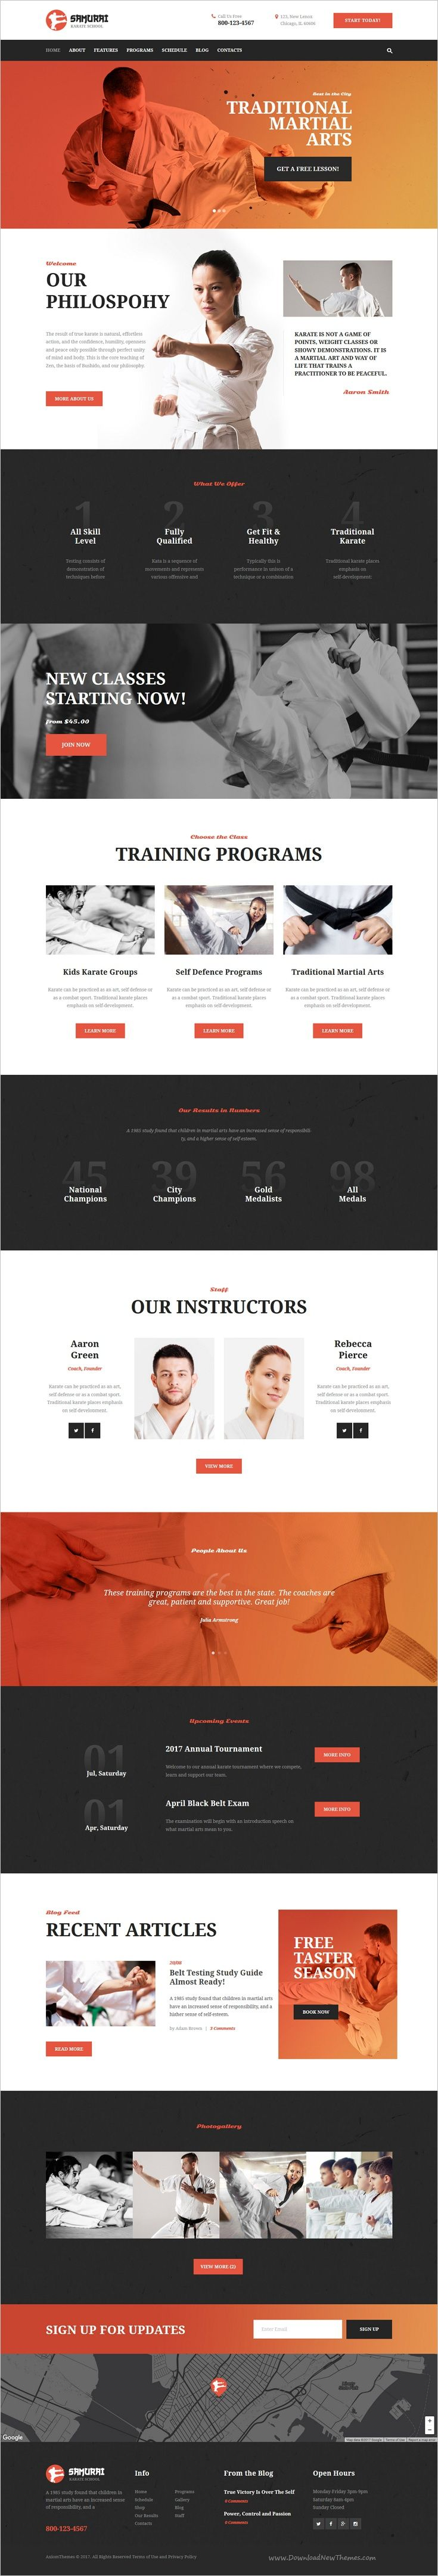 Samurai is modern and elegant design responsive 3in1 #WordPress theme for #webdesign sports industry, #martial arts, #karate school, fitness clubs or personal trainers website download now➩ https://themeforest.net/item/samurai-karate-school-and-fitness-center/19235121?ref=Datasata